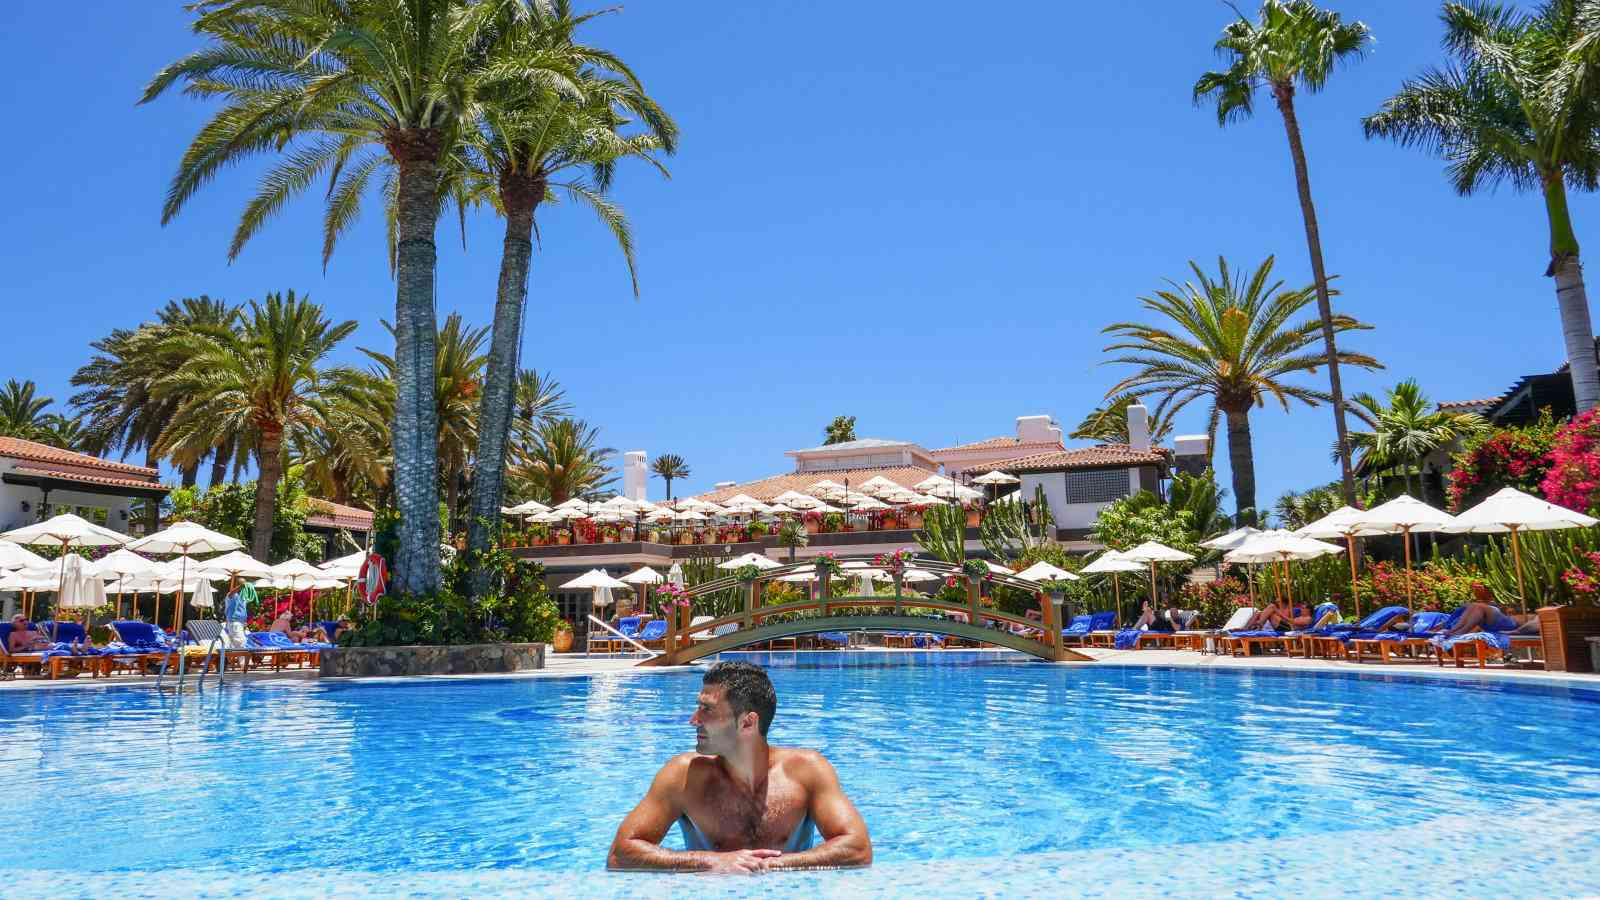 The Seaside Hotel Residencia is a truly grand place to stay in Gran Canaria which is very gay friendly as well